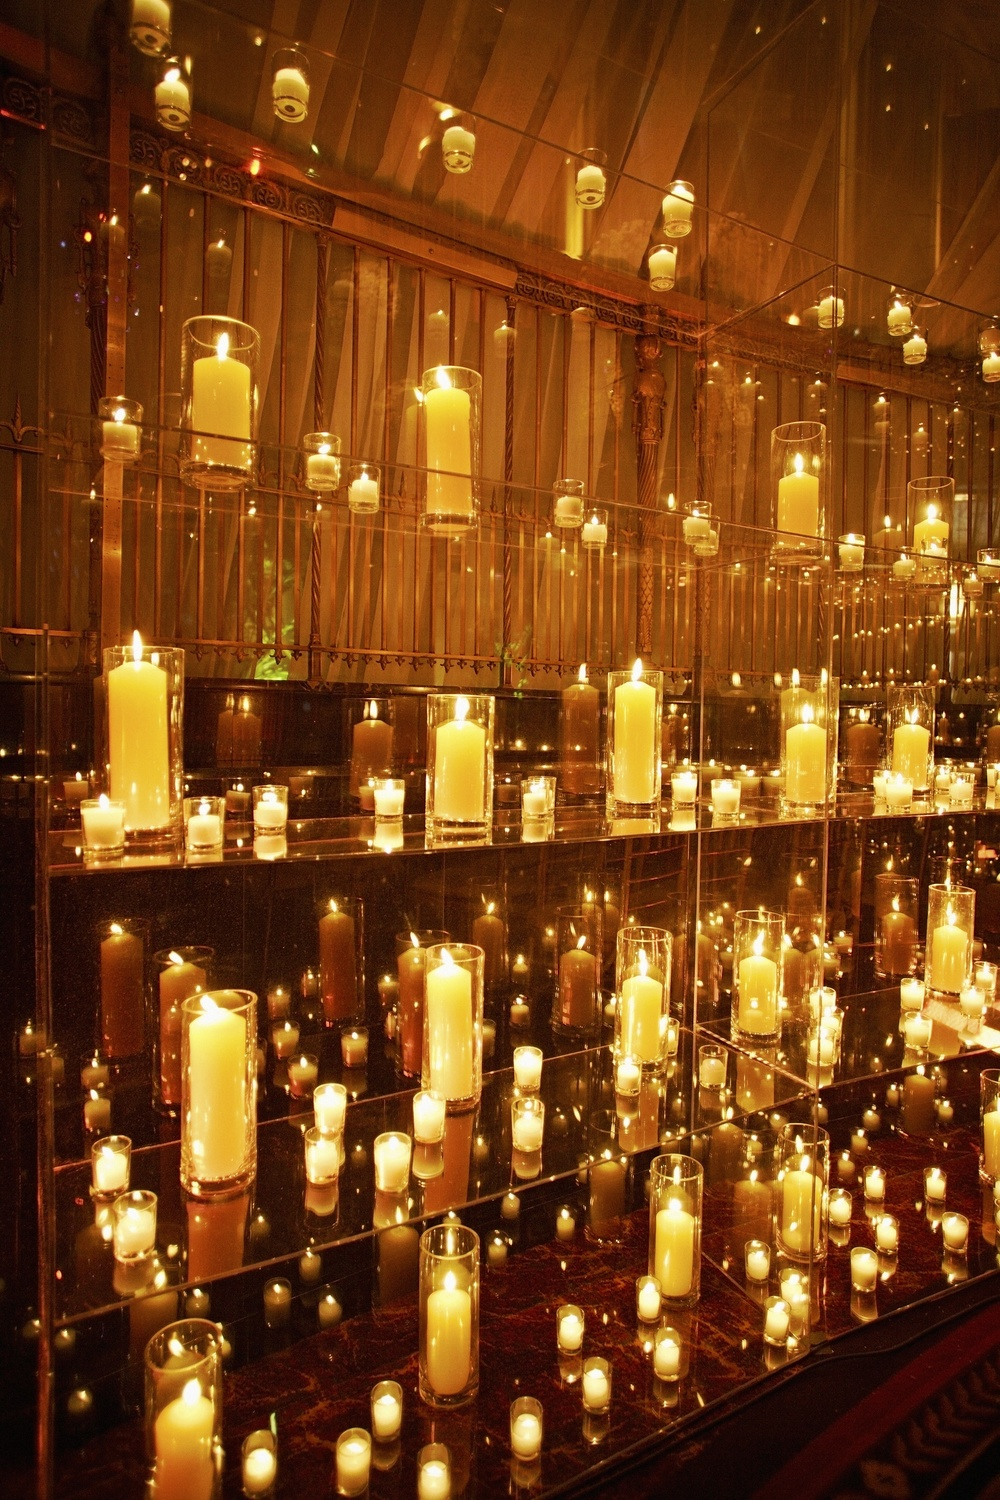 Wall of Candles